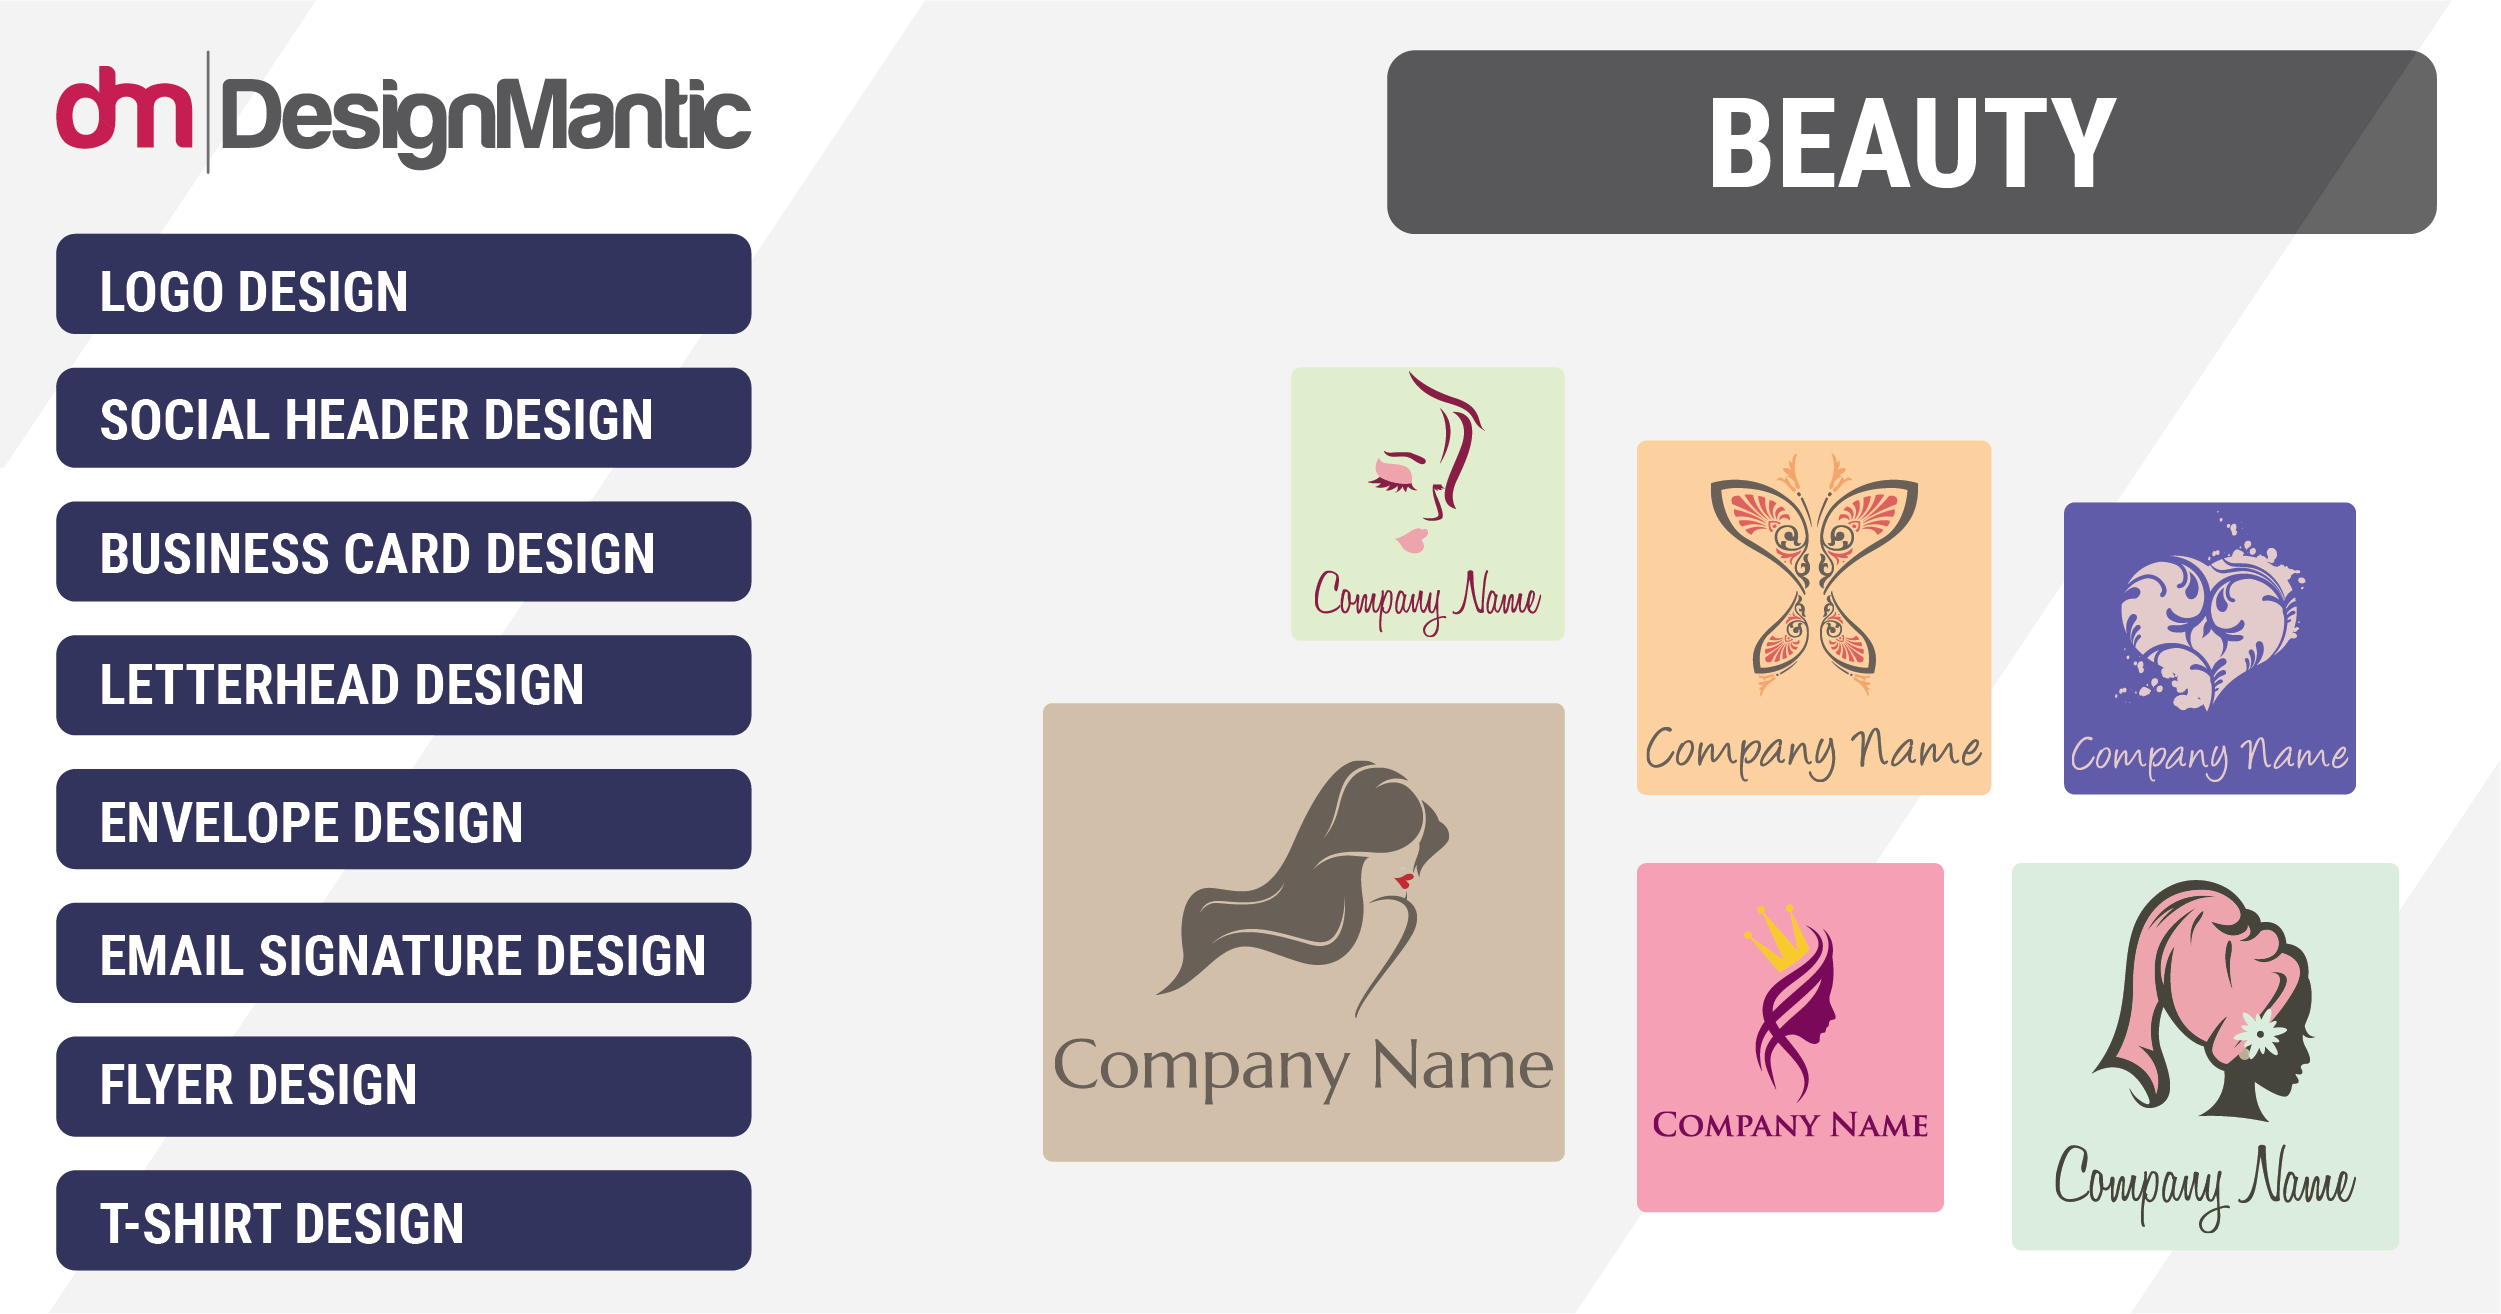 Free Beauty Logos, Spa, Salon, Stylist, Cosmetic Logo Templates